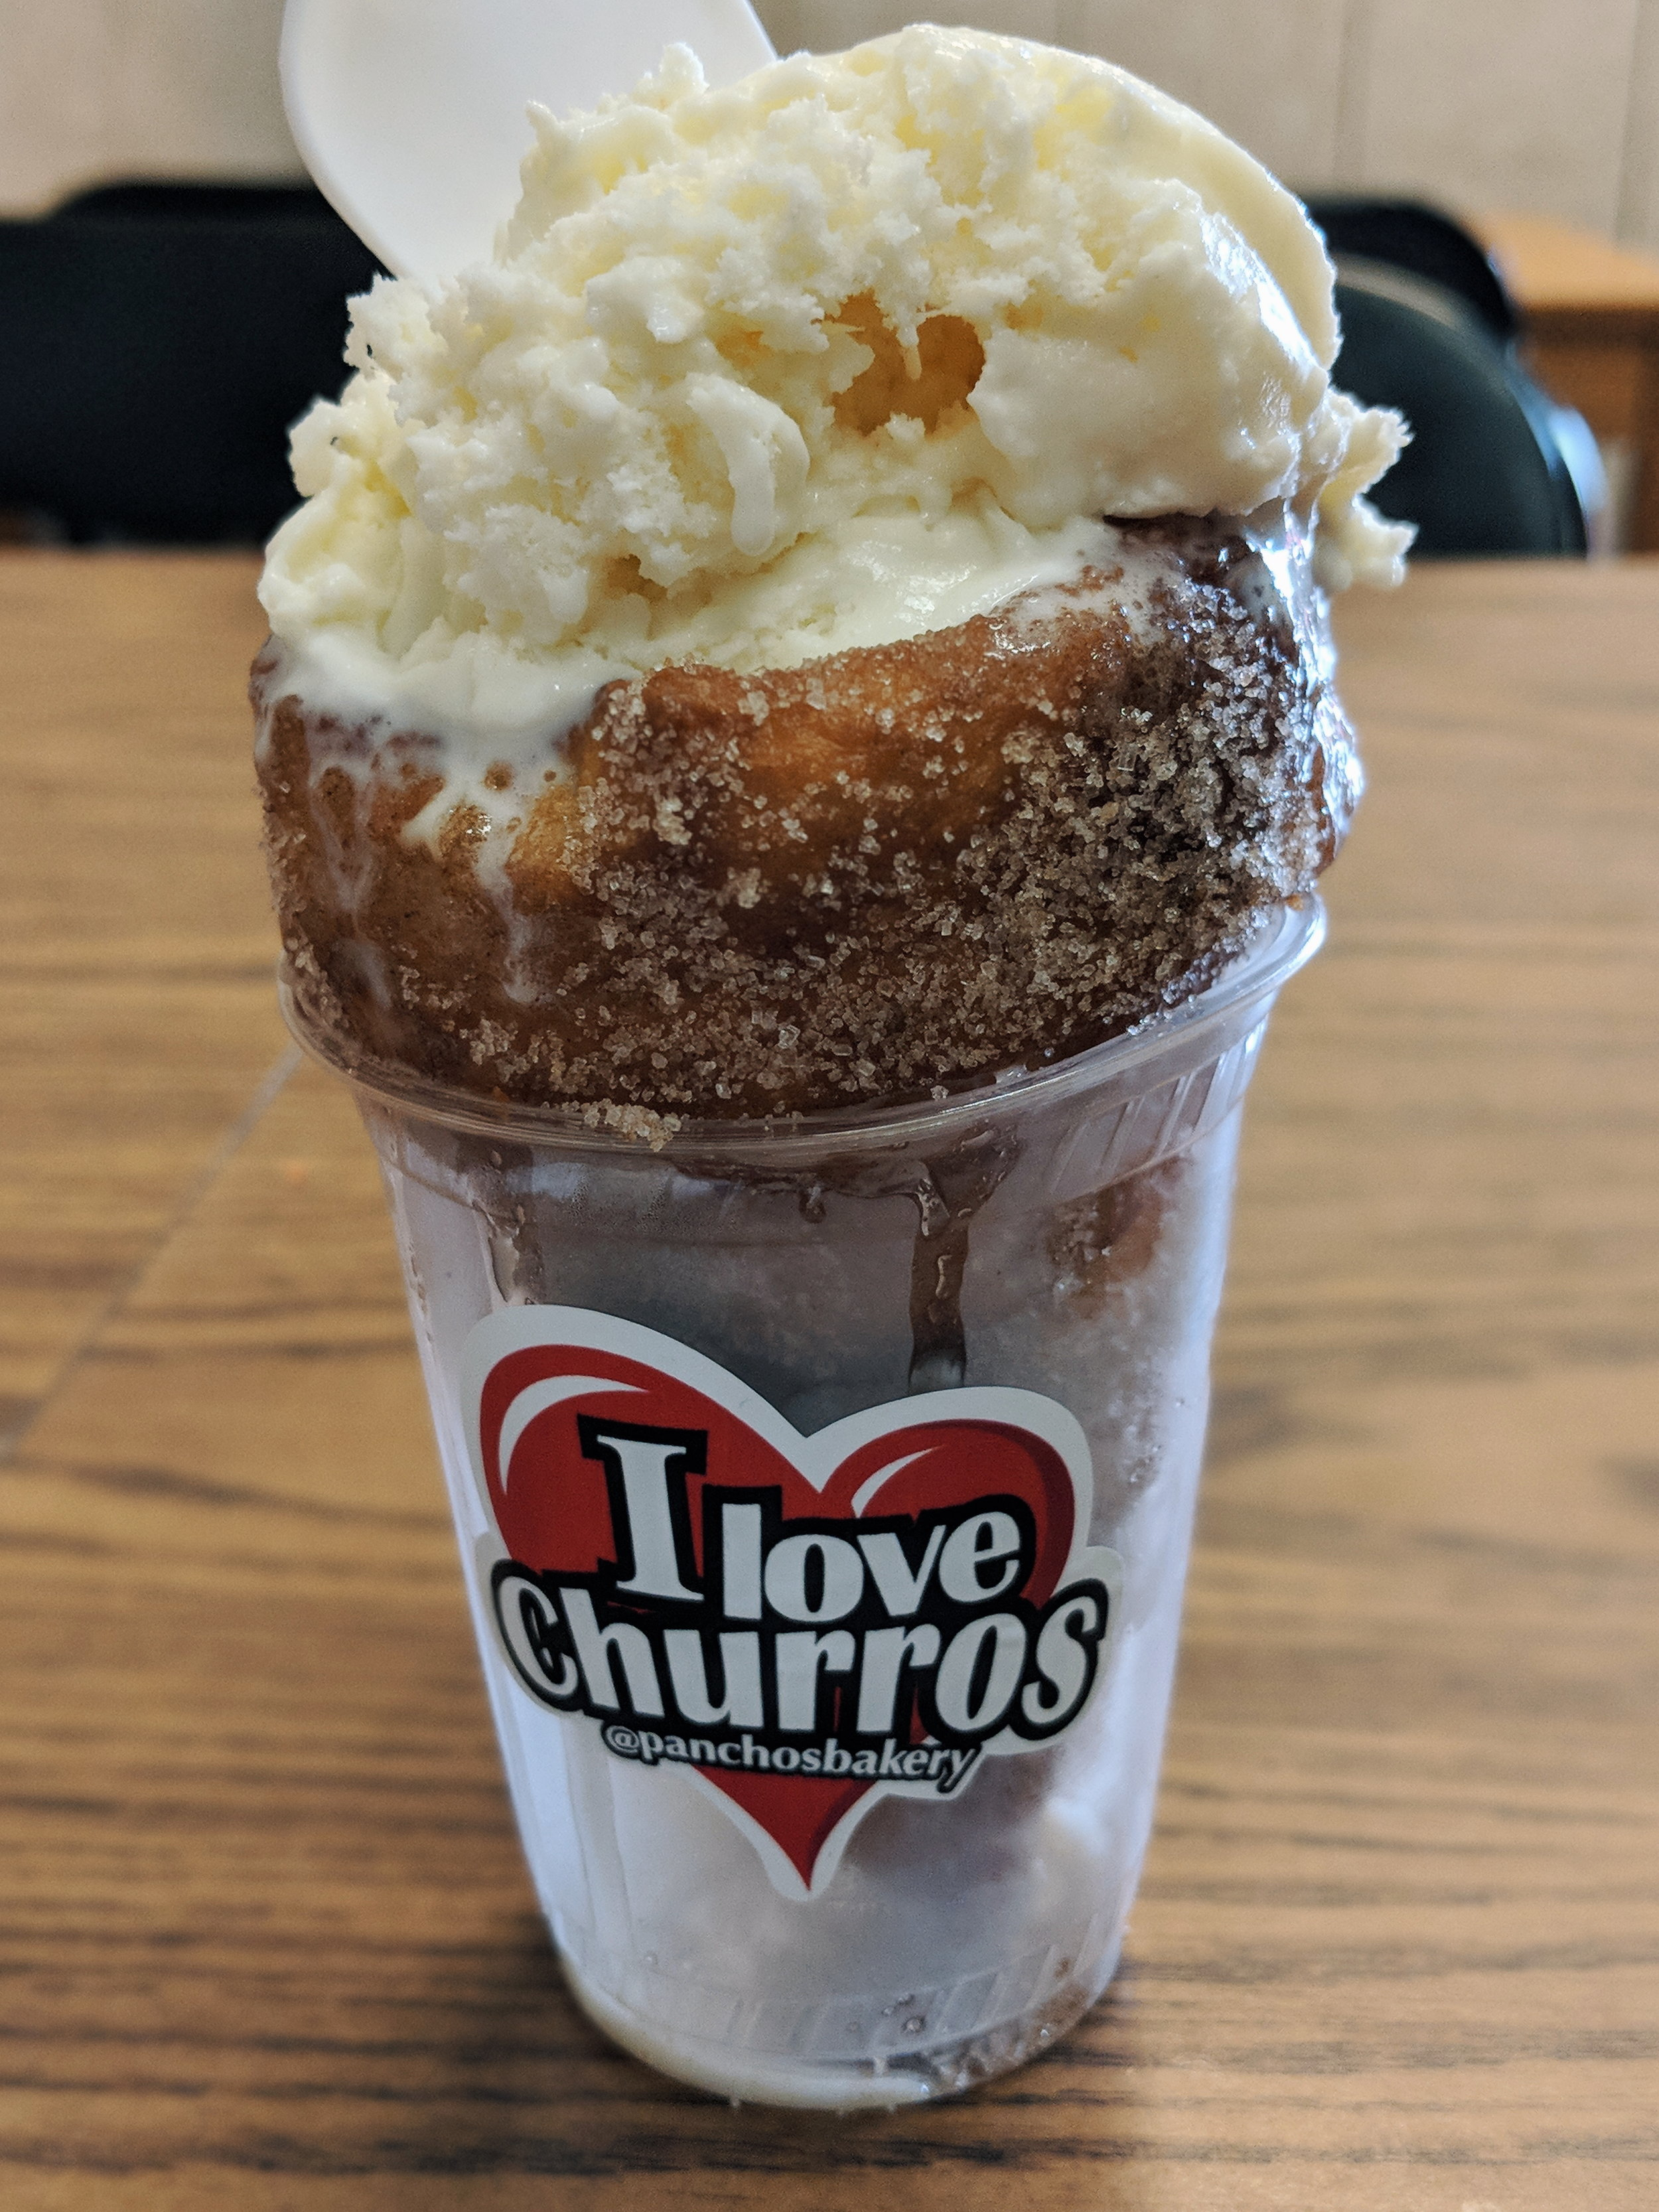 Really good if you're a churro lover, but ice cream melts fast because the churro is hot!